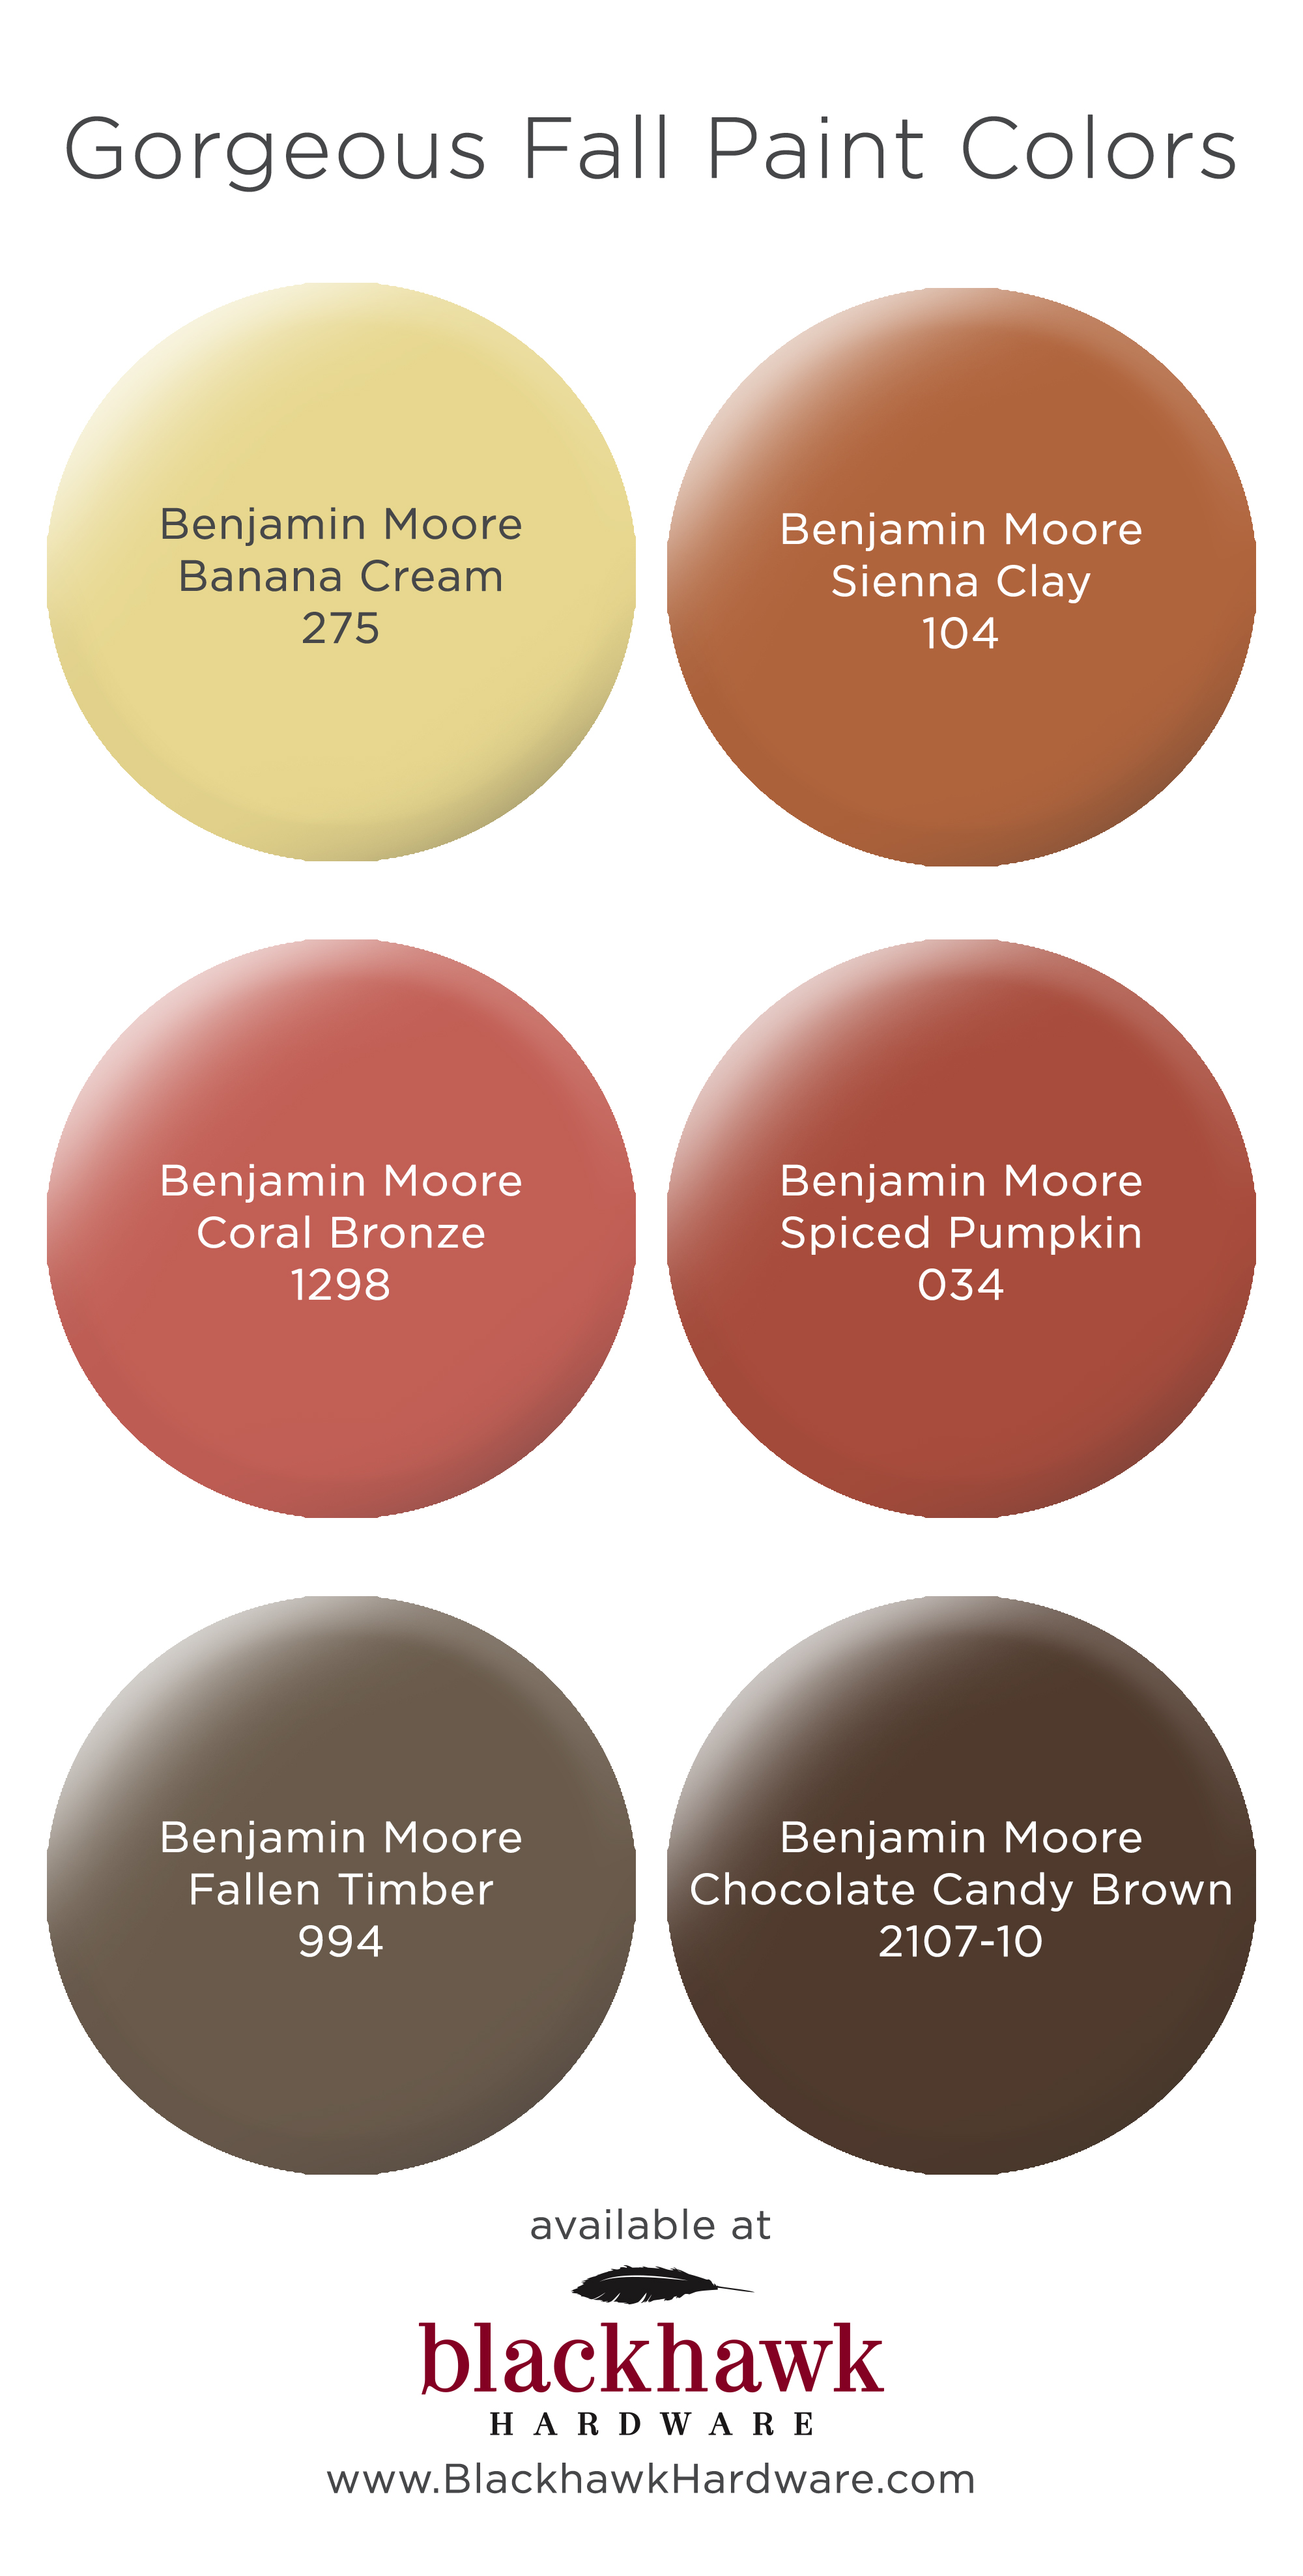 Fall inspired paint colors by benjamin moore blackhawk Great paint colors